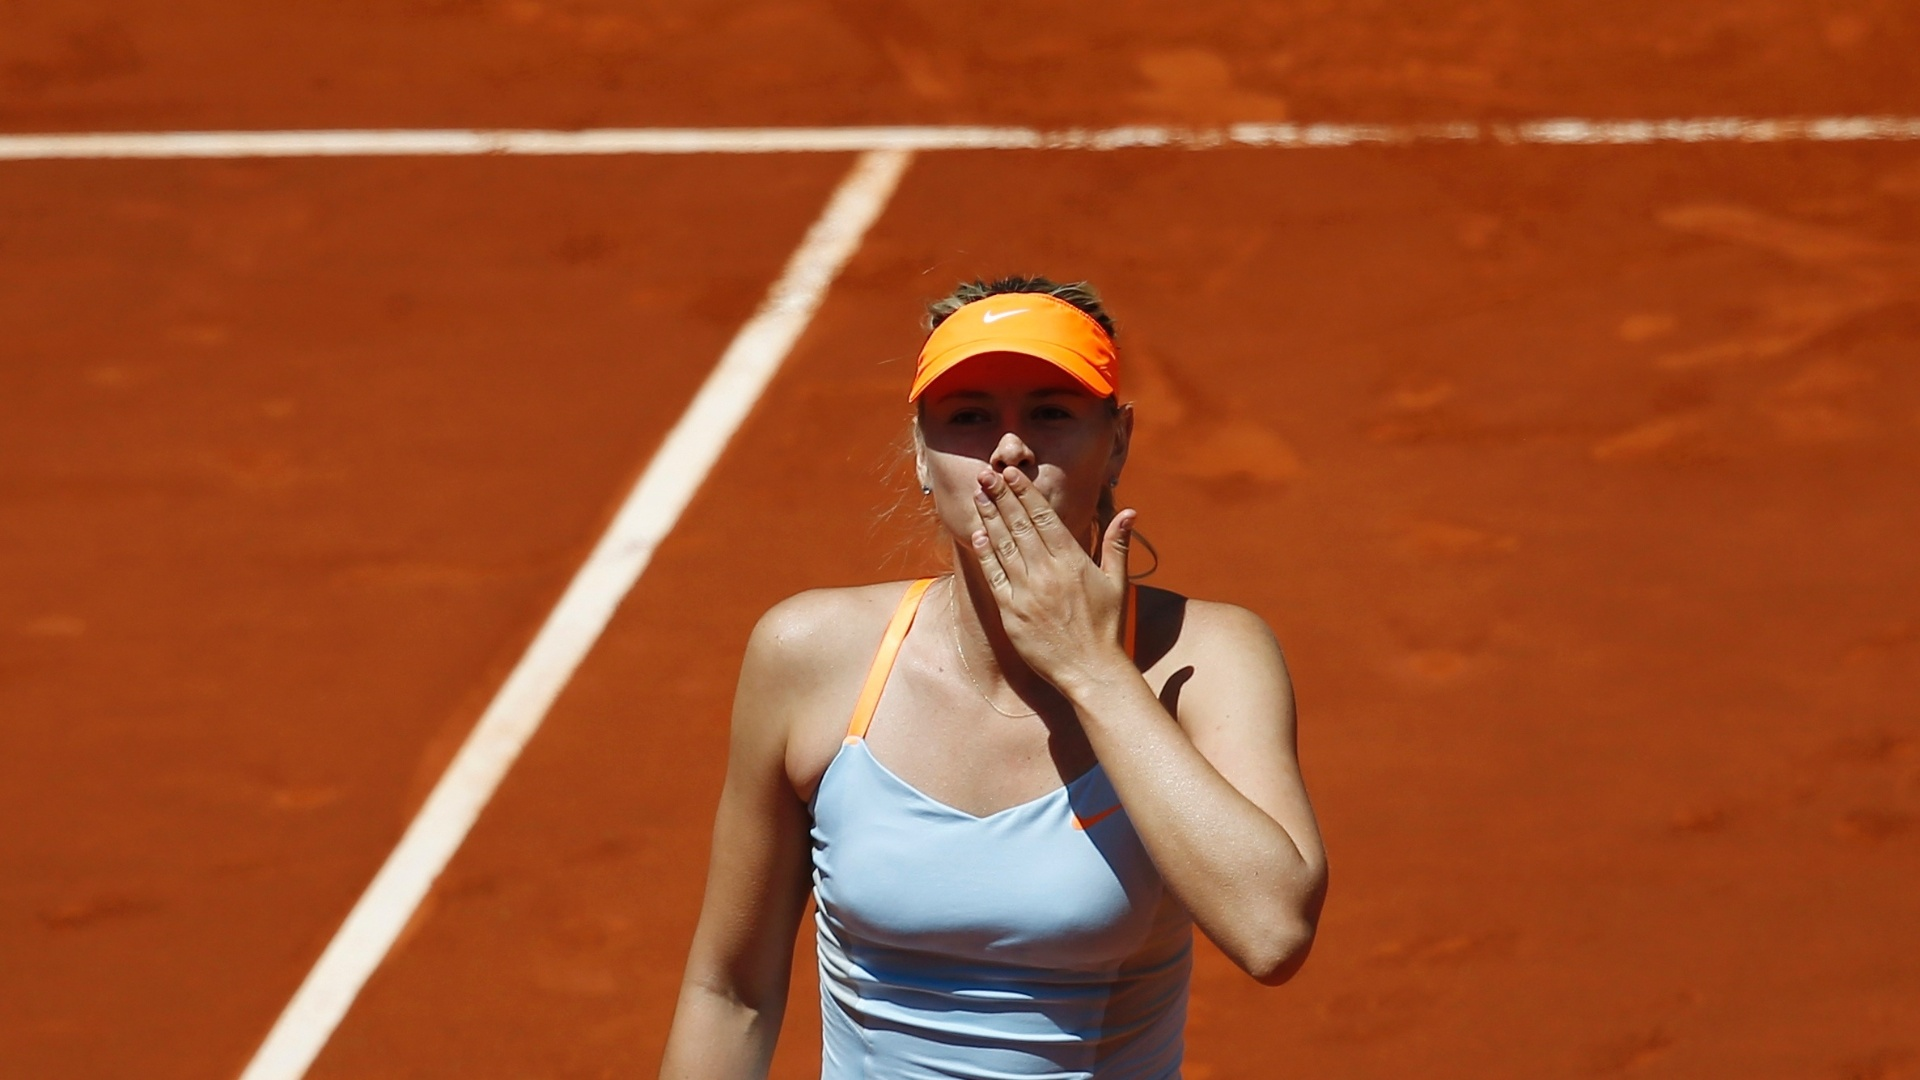 11.05.2013 - Sharapova sada a torcida depois de vencer pela 500 vez na carreira e chegar na final do Masters 1000 de Madri